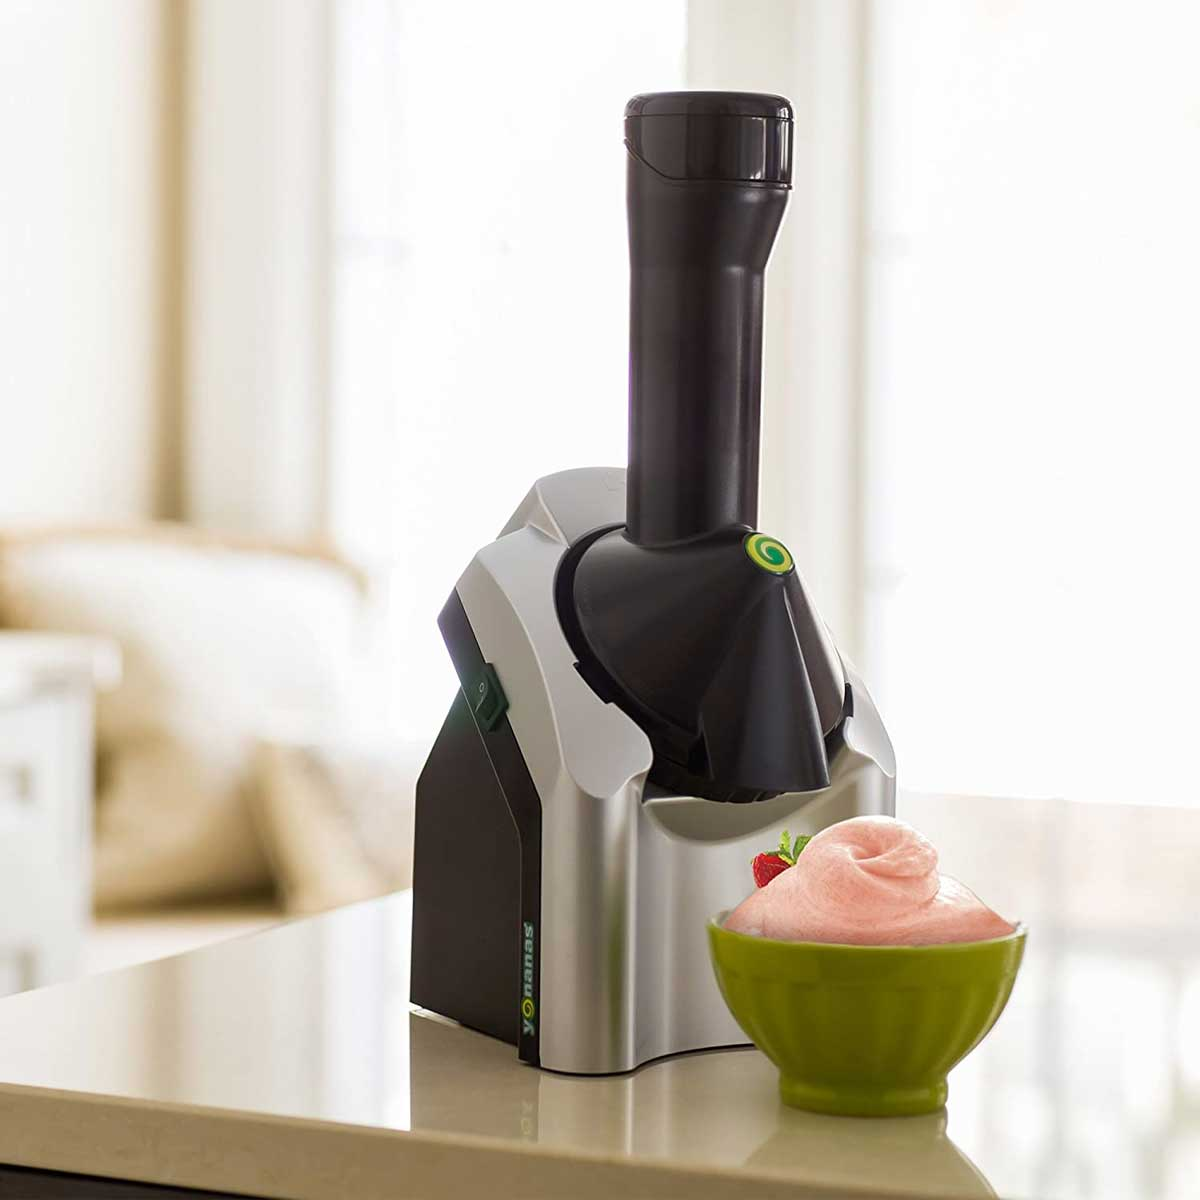 A Yonanas fruit soft serve maker with a bowl of homemade soft serve in a green bowl.